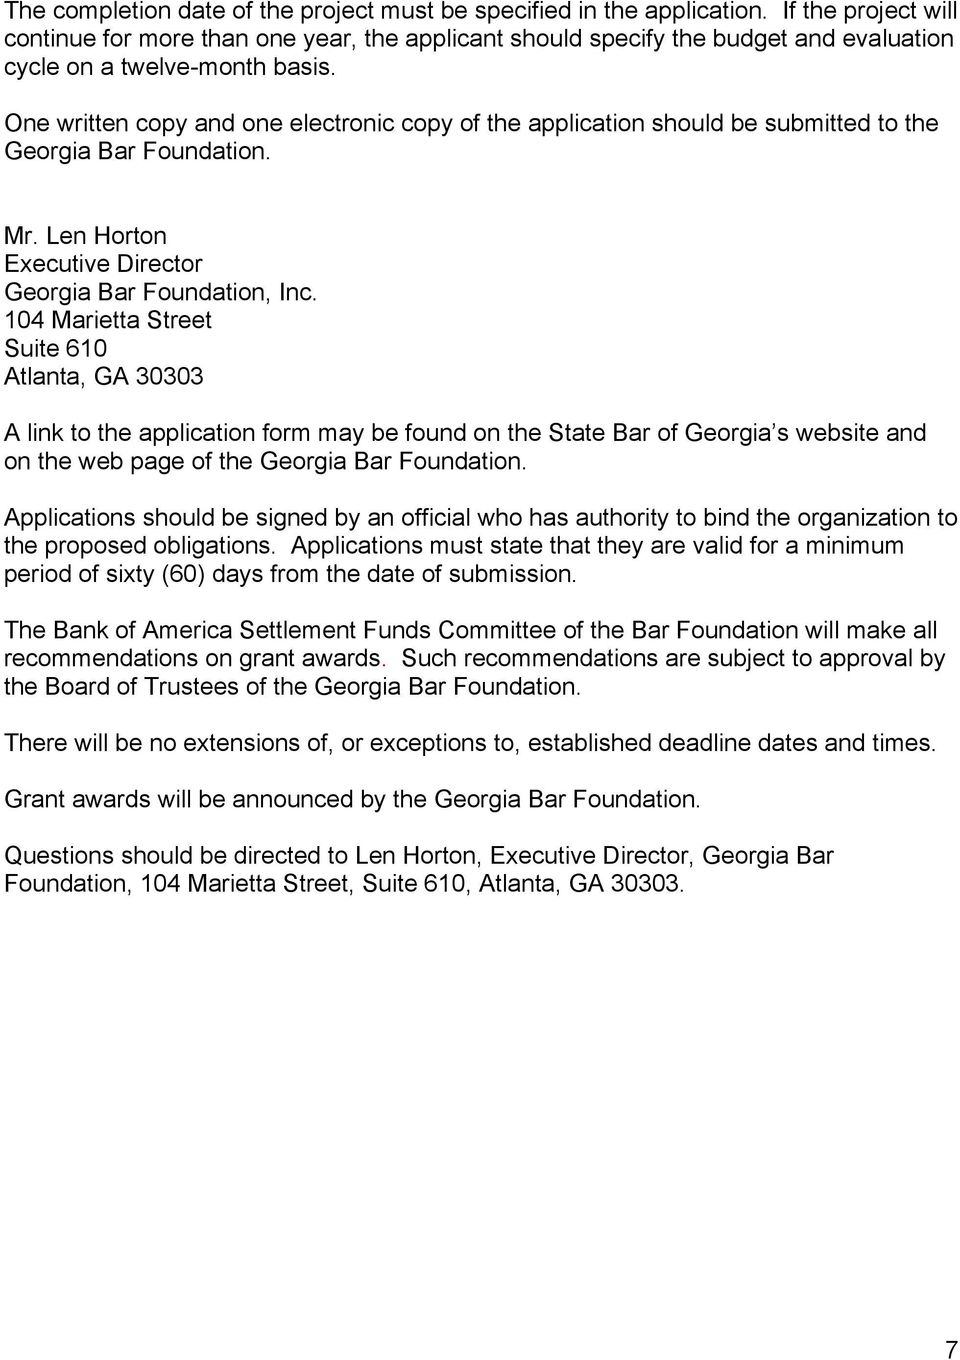 One written copy and one electronic copy of the application should be submitted to the Georgia Bar Foundation. Mr. Len Horton Executive Director Georgia Bar Foundation, Inc.